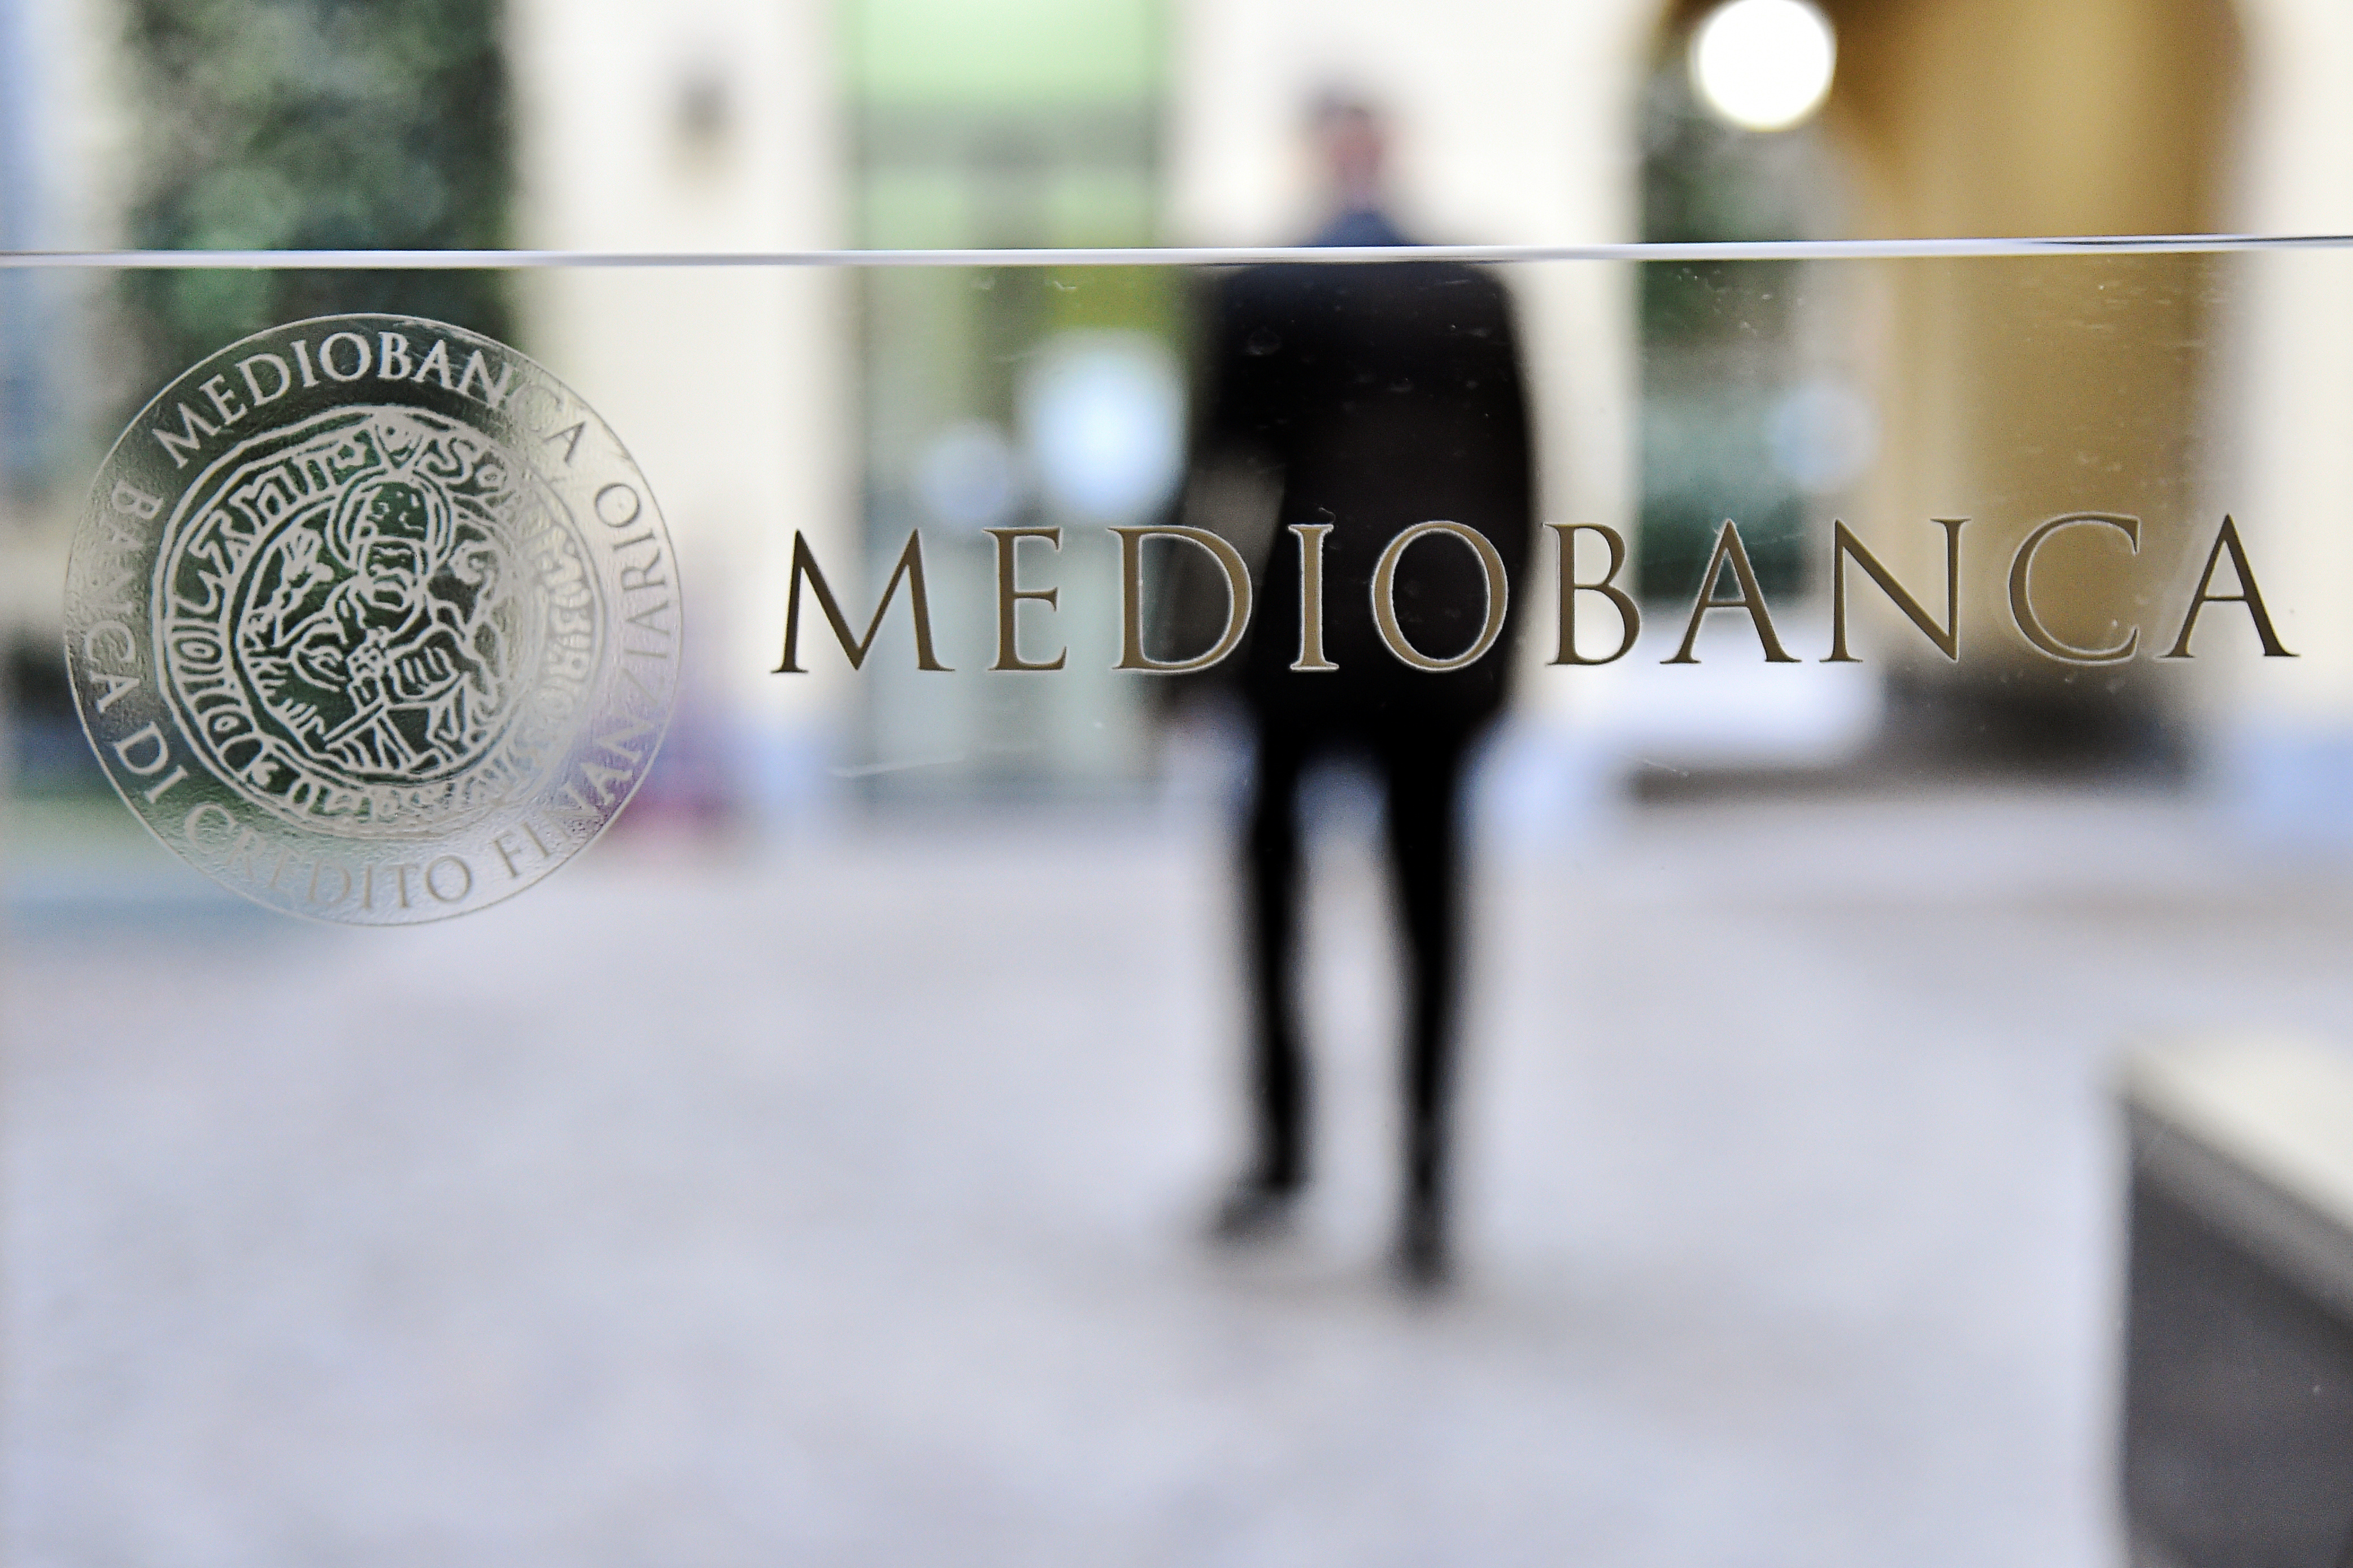 The Mediobanca logo is pictured in Milan, Italy, November 12, 2019. REUTERS/Flavio Lo Scalzo